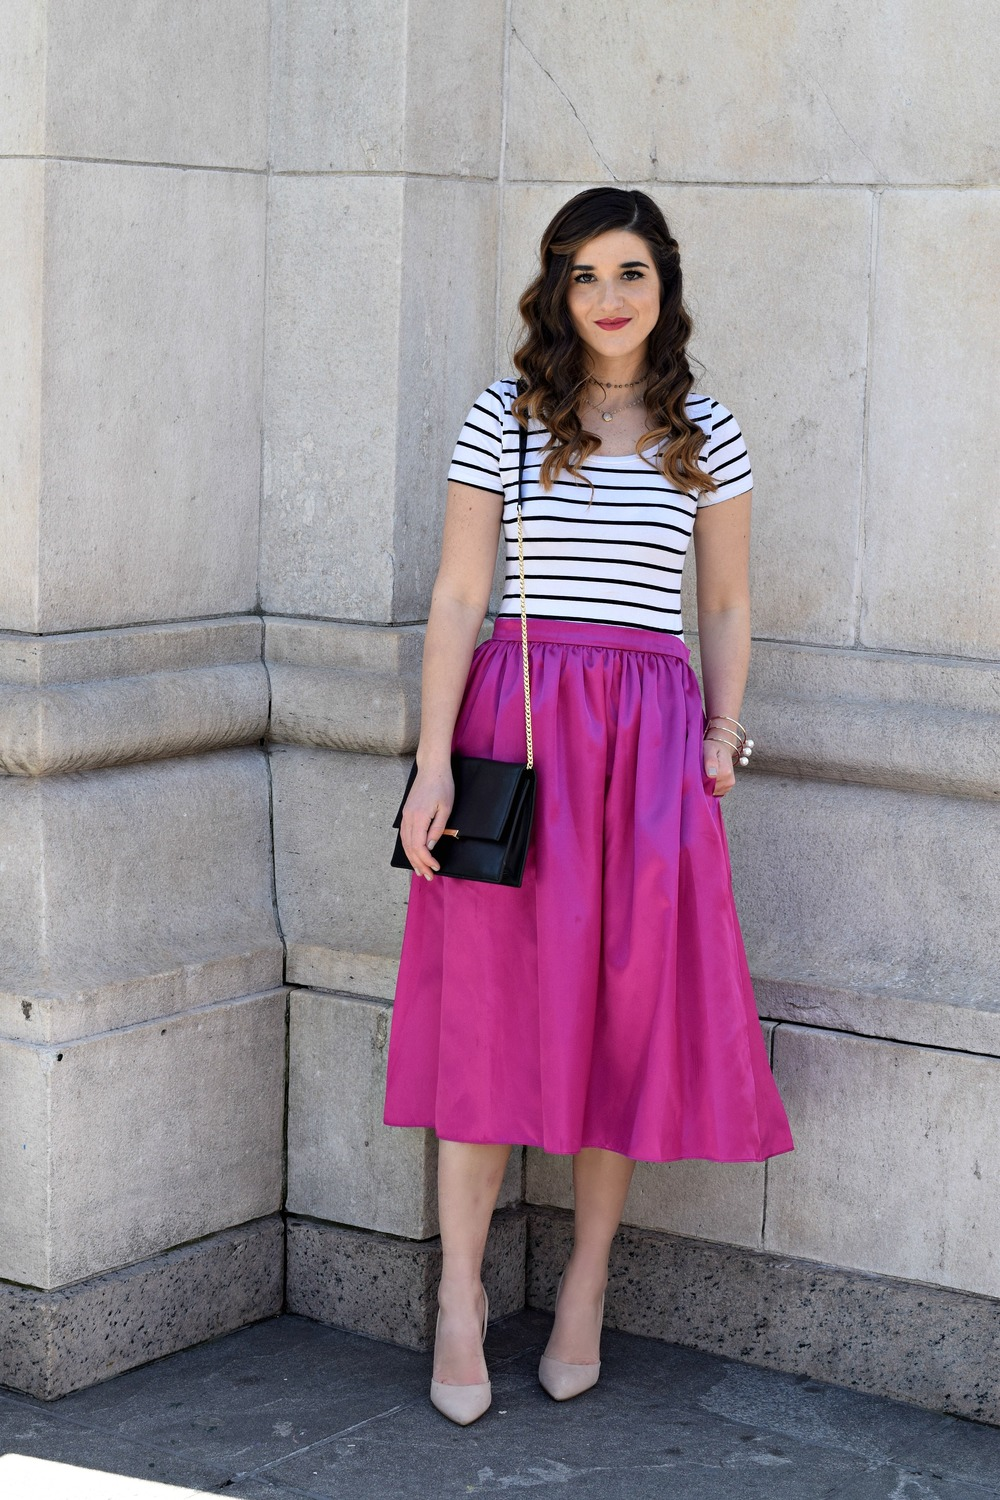 Fuchsia Party Skirt More Than Just Figleaves Louboutins & Love Fashion Blog Esther Santer NYC Street Style Blogger Outfit OOTD Midi Photoshoot Girl Women Striped Tee Ivanka Trump Black Purse Gold Jewelry Bracelet Choker Nude Shoes Heels Steve Madden.jpg